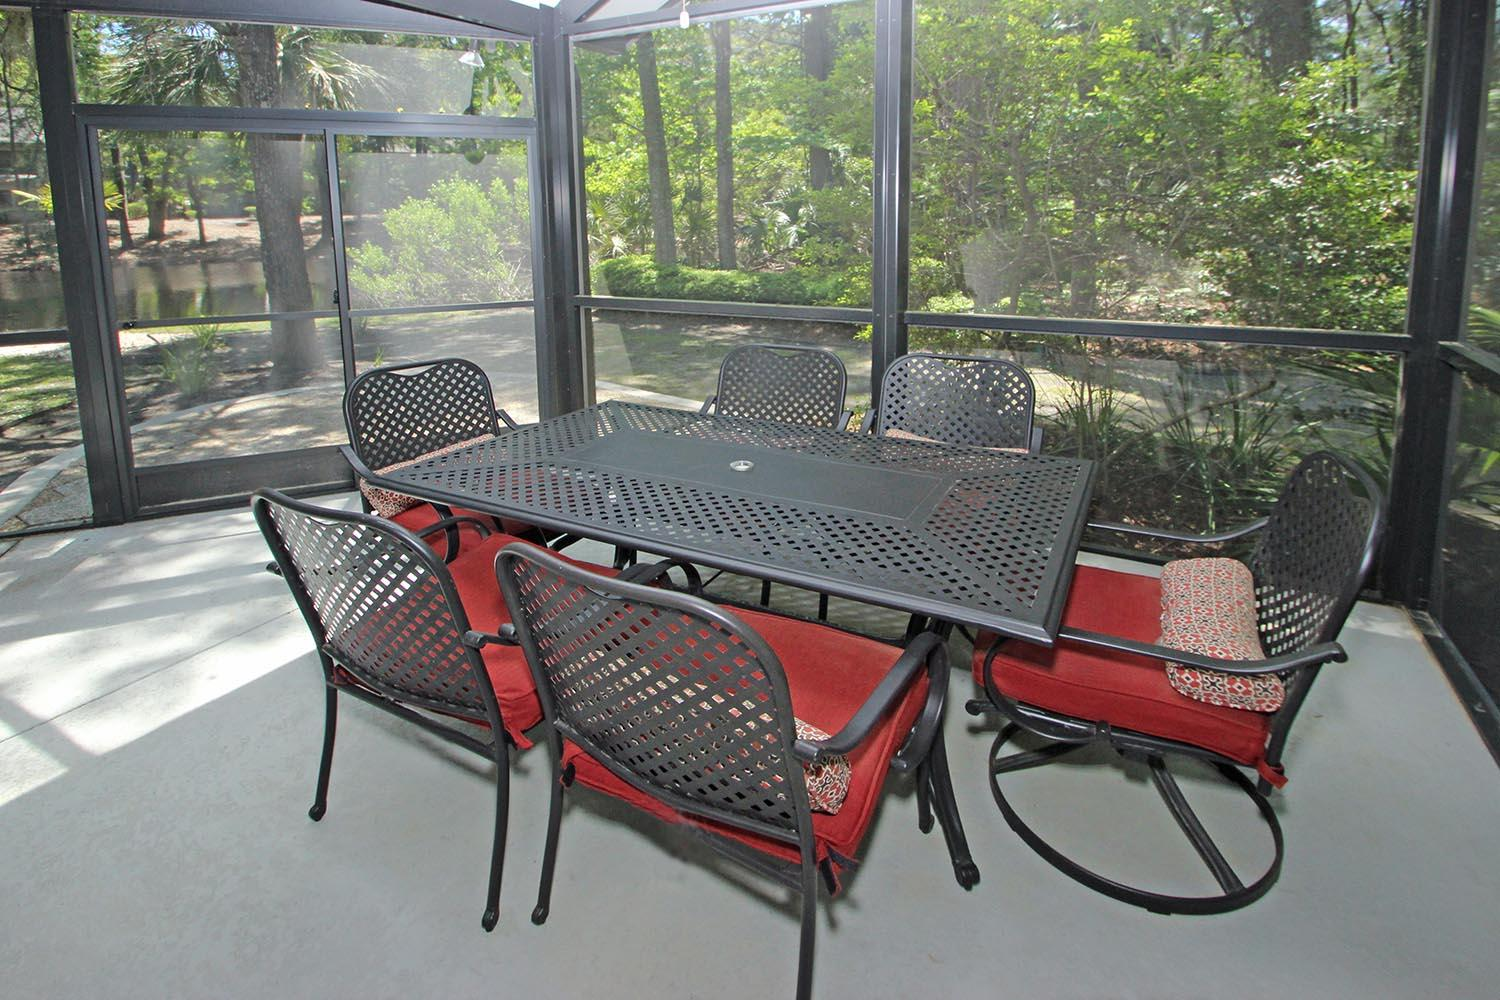 Screened porch with table and chairs